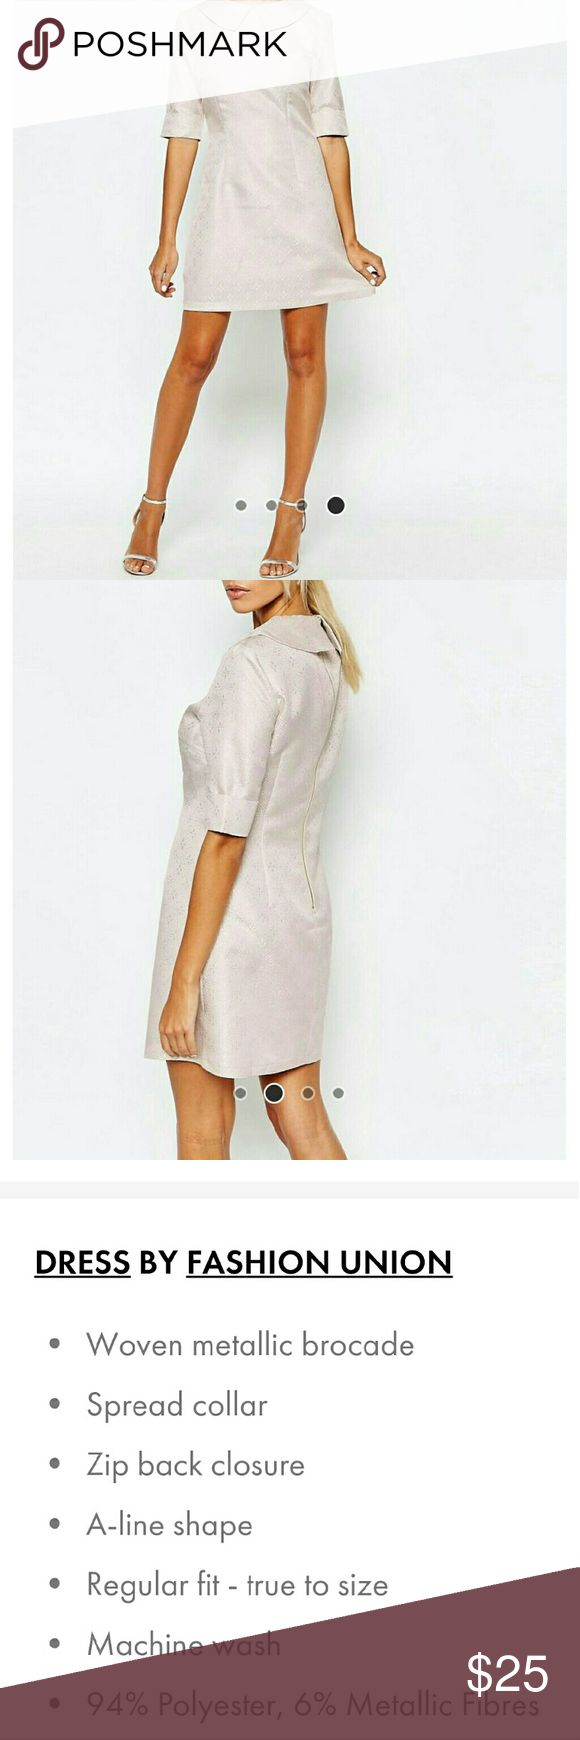 Brocade Aline Collar Dress NWT. UK 12/US 8. Fabric is sparkly in person. This size is sold out. ASOS Dresses